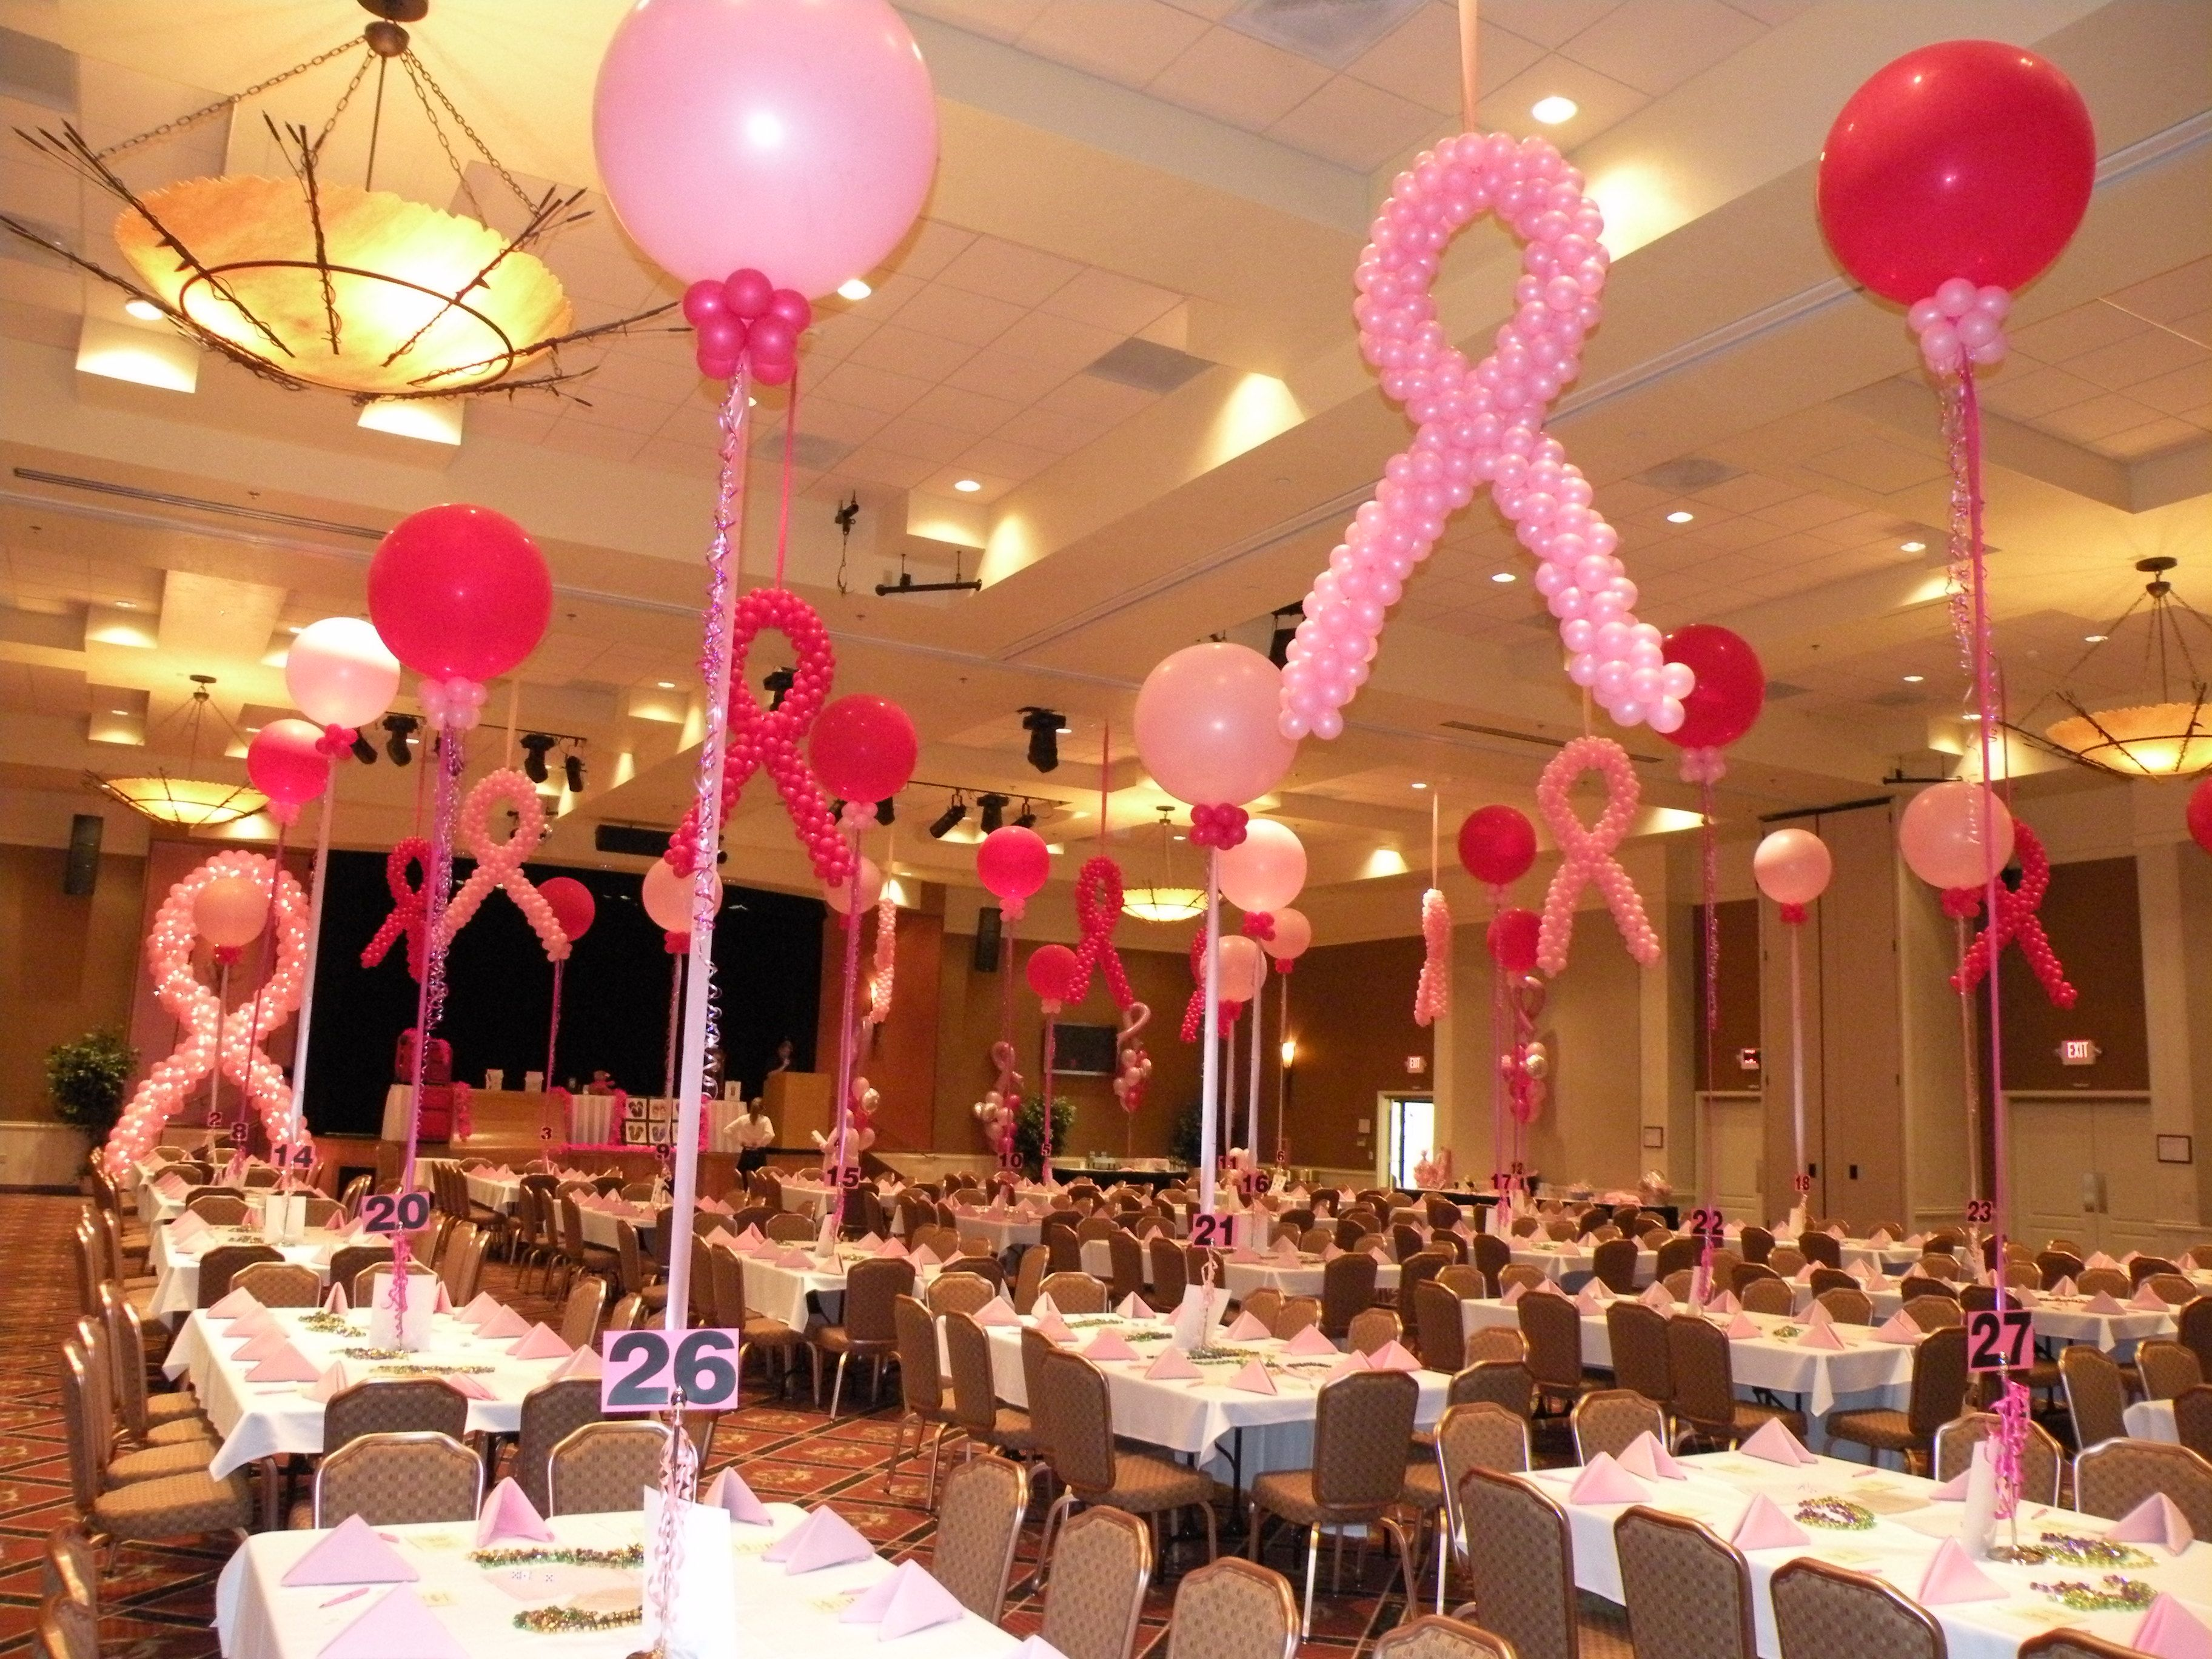 breast cancer fundraising event decor such an inspiring cause and these cute decorations have. Black Bedroom Furniture Sets. Home Design Ideas